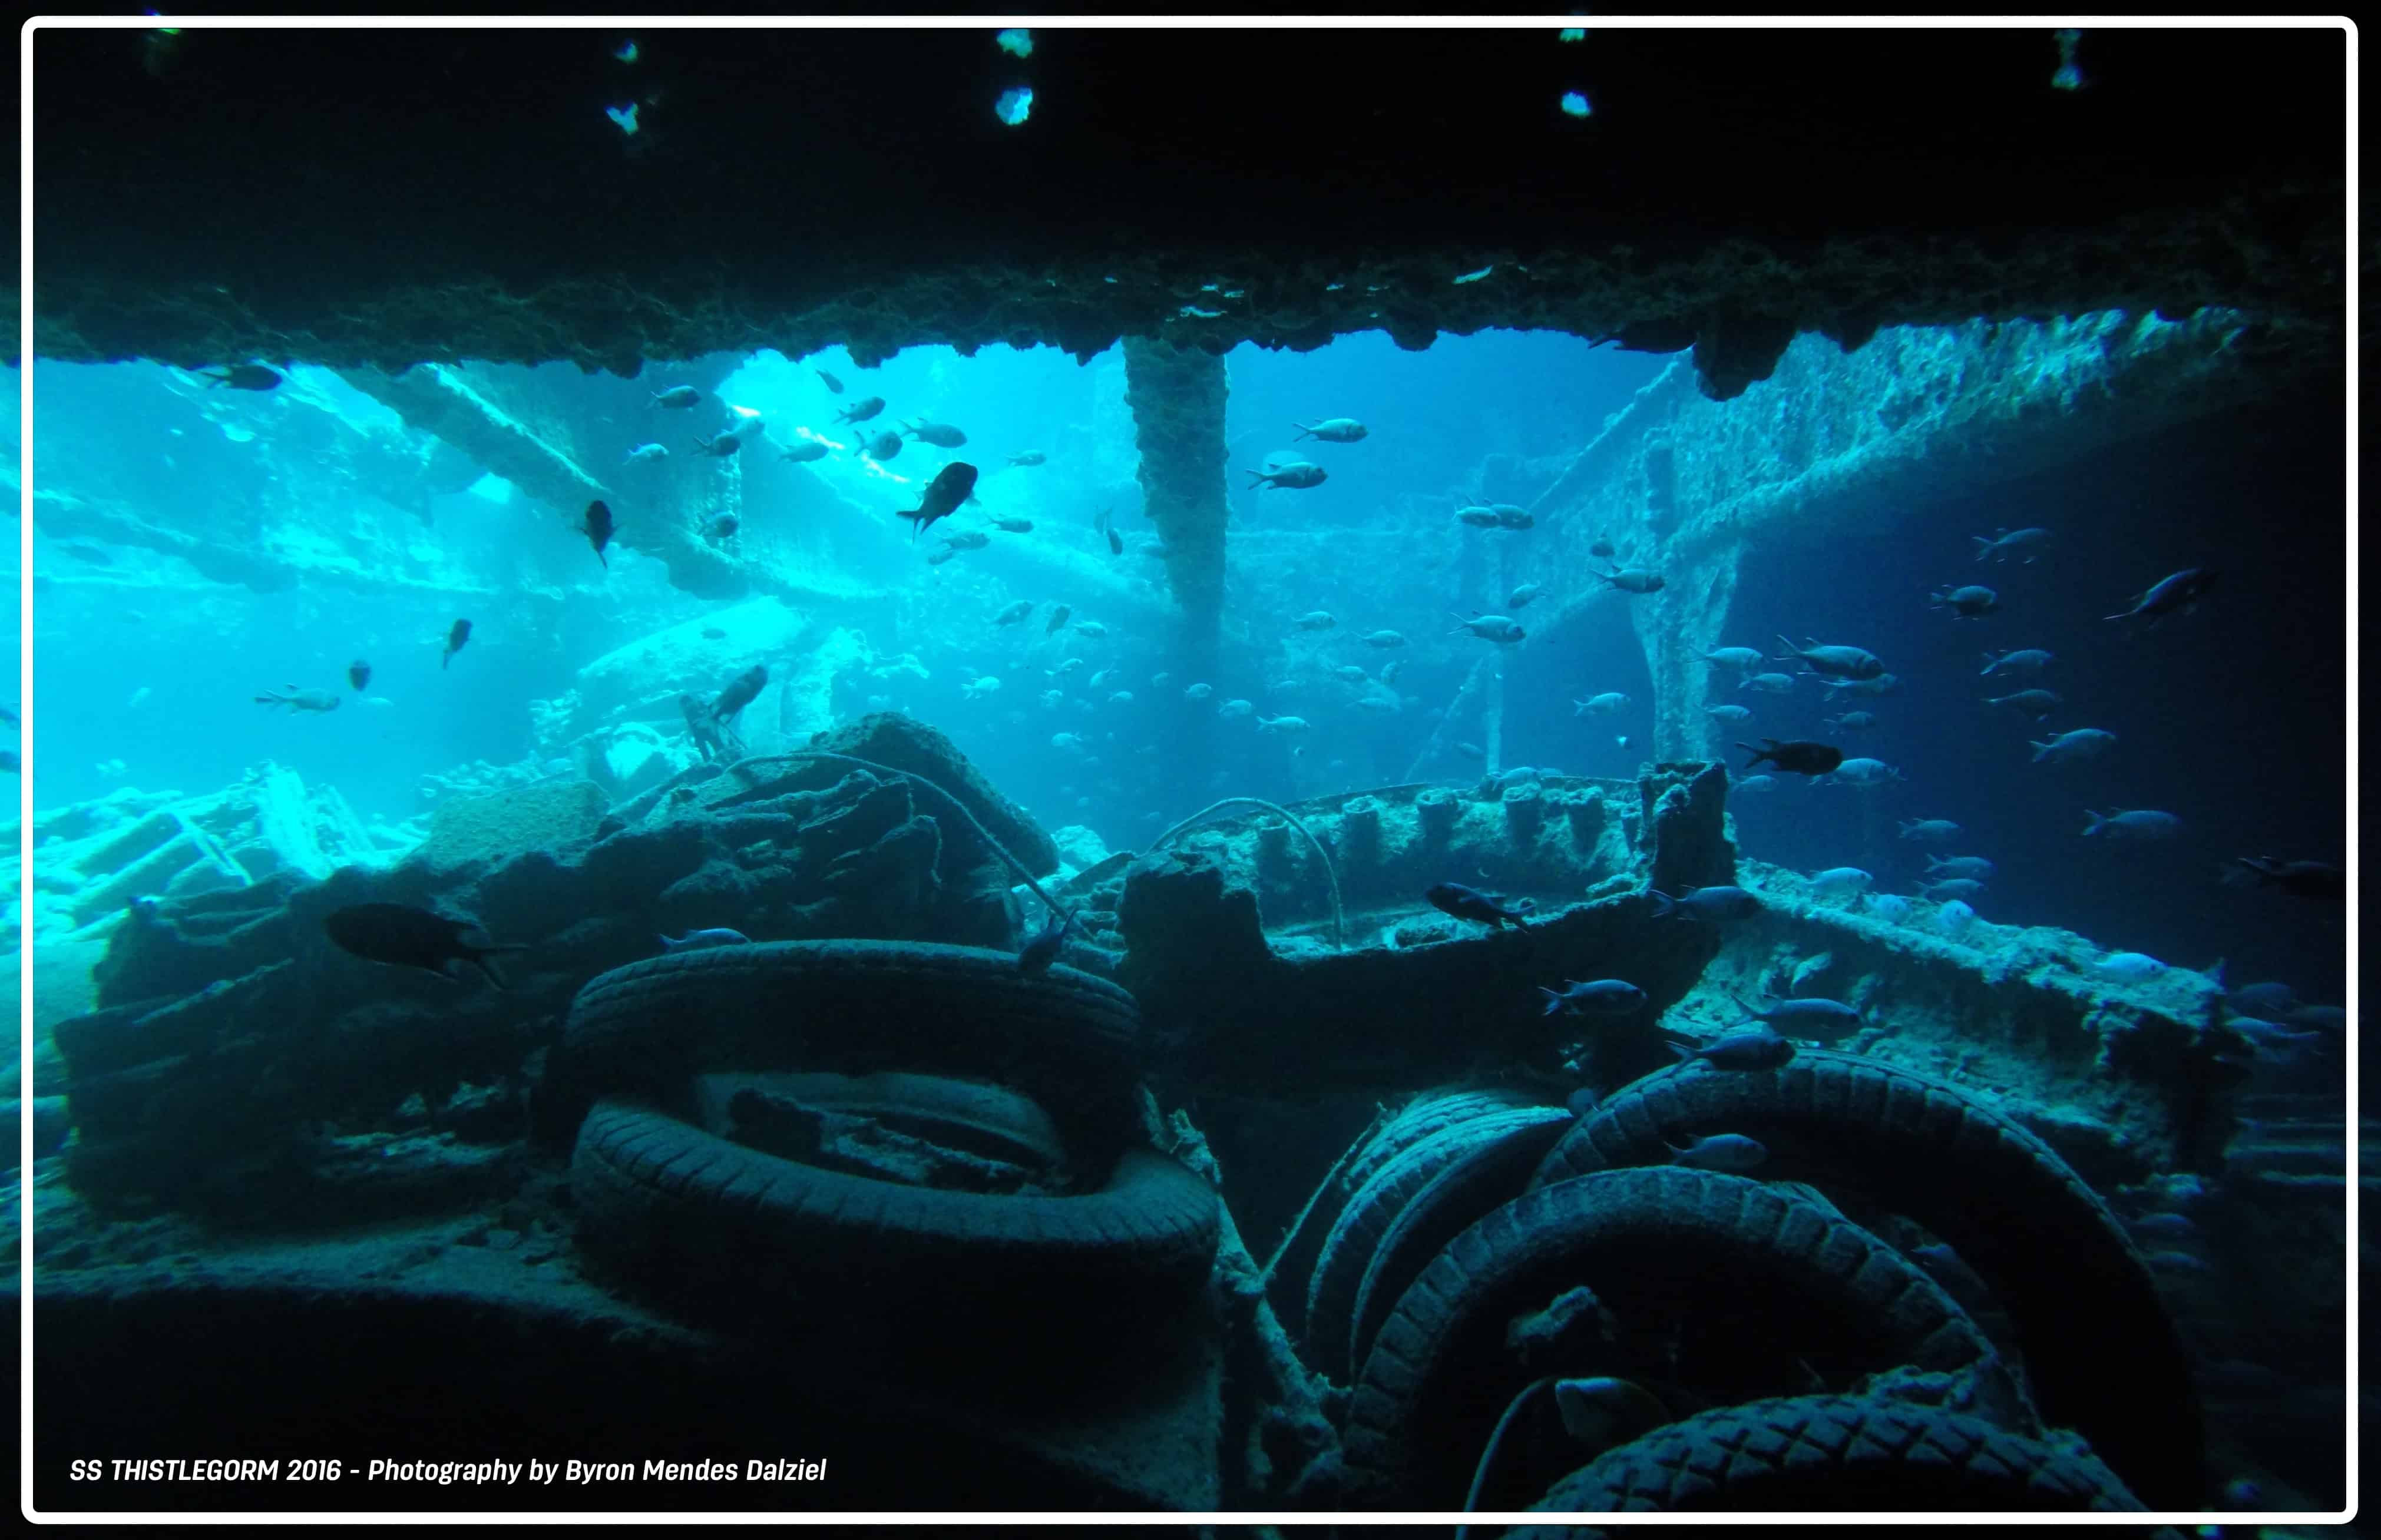 THE ULTIMATE DIVING EXPERIENCE - THE RED SEA